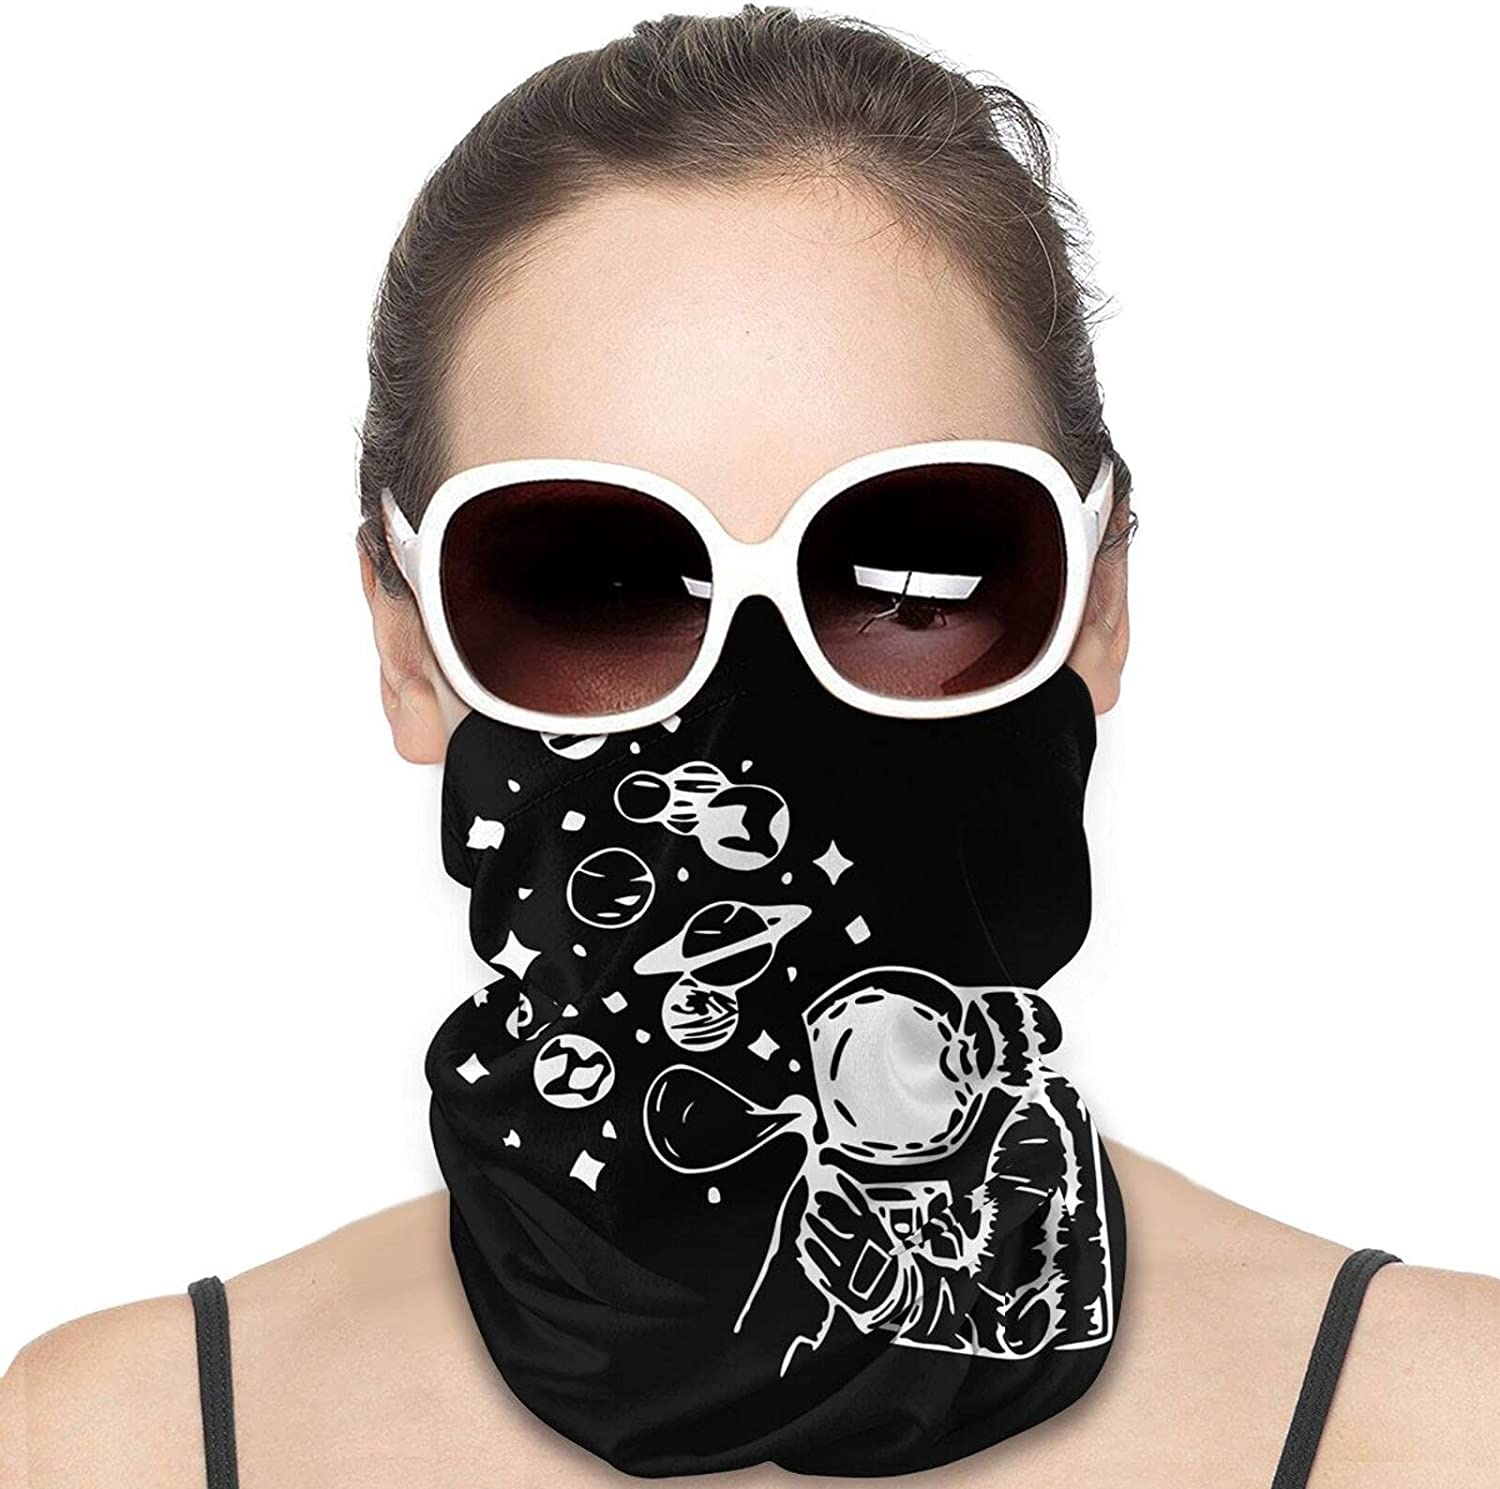 Astronaut Making Planet Soap Balloons Round Neck Gaiter Bandnas Face Cover Uv Protection Prevent bask in Ice Scarf Headbands Perfect for Motorcycle Cycling Running Festival Raves Outdoors